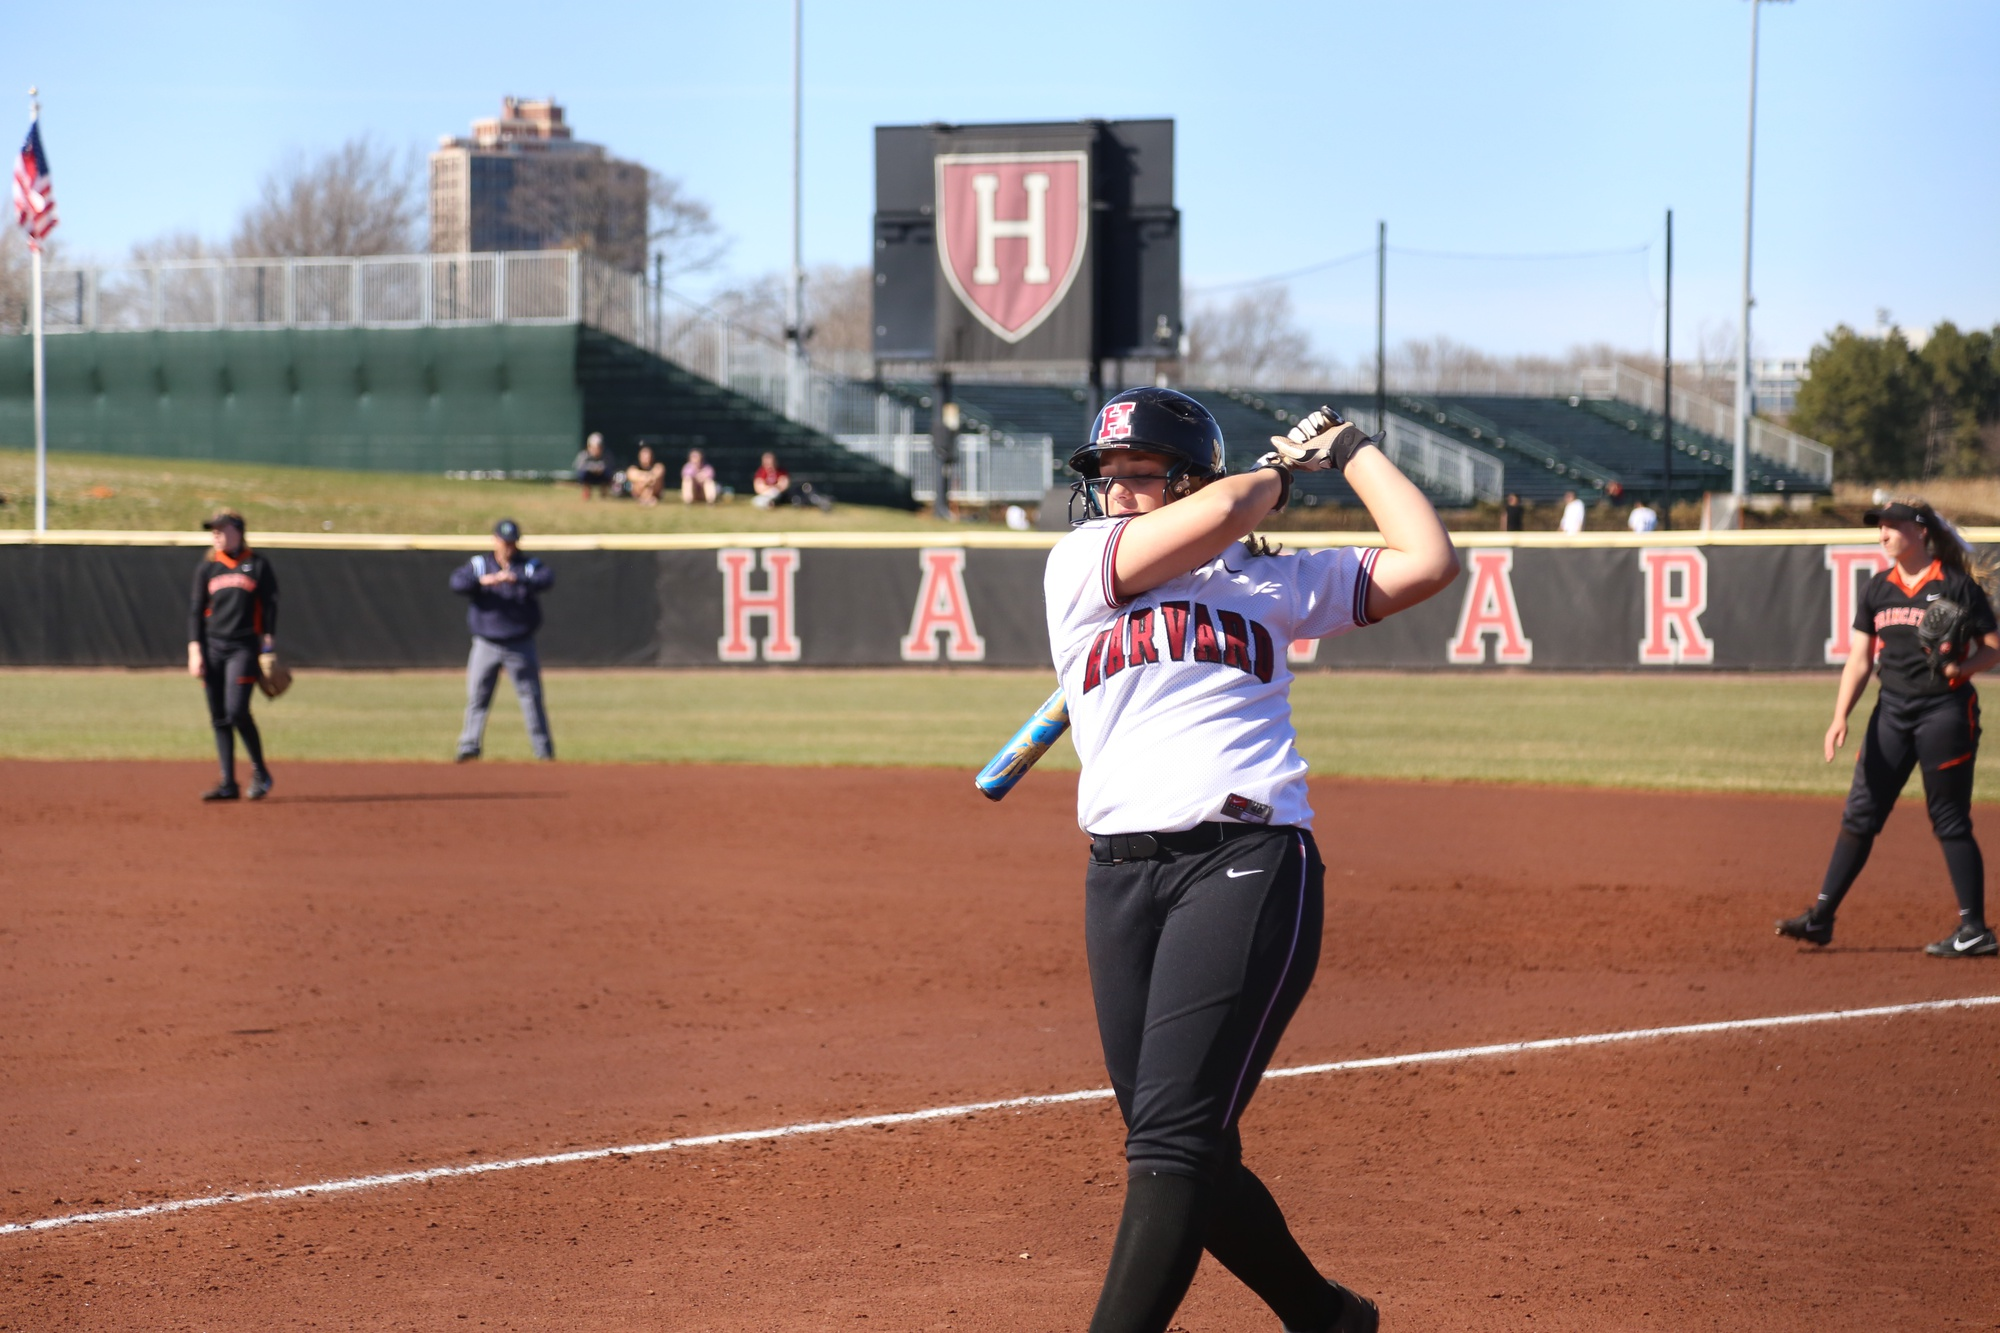 Pitcher and first baseman Olivia Giaquinto is only a freshman, but in her first year, the player has delivered great power to the Crimson from the batter's box and the pitcher's mound. Over the weekend, Giaquinto went 7-of-12 as Harvard clinched a spot in the Ivy League Championships.